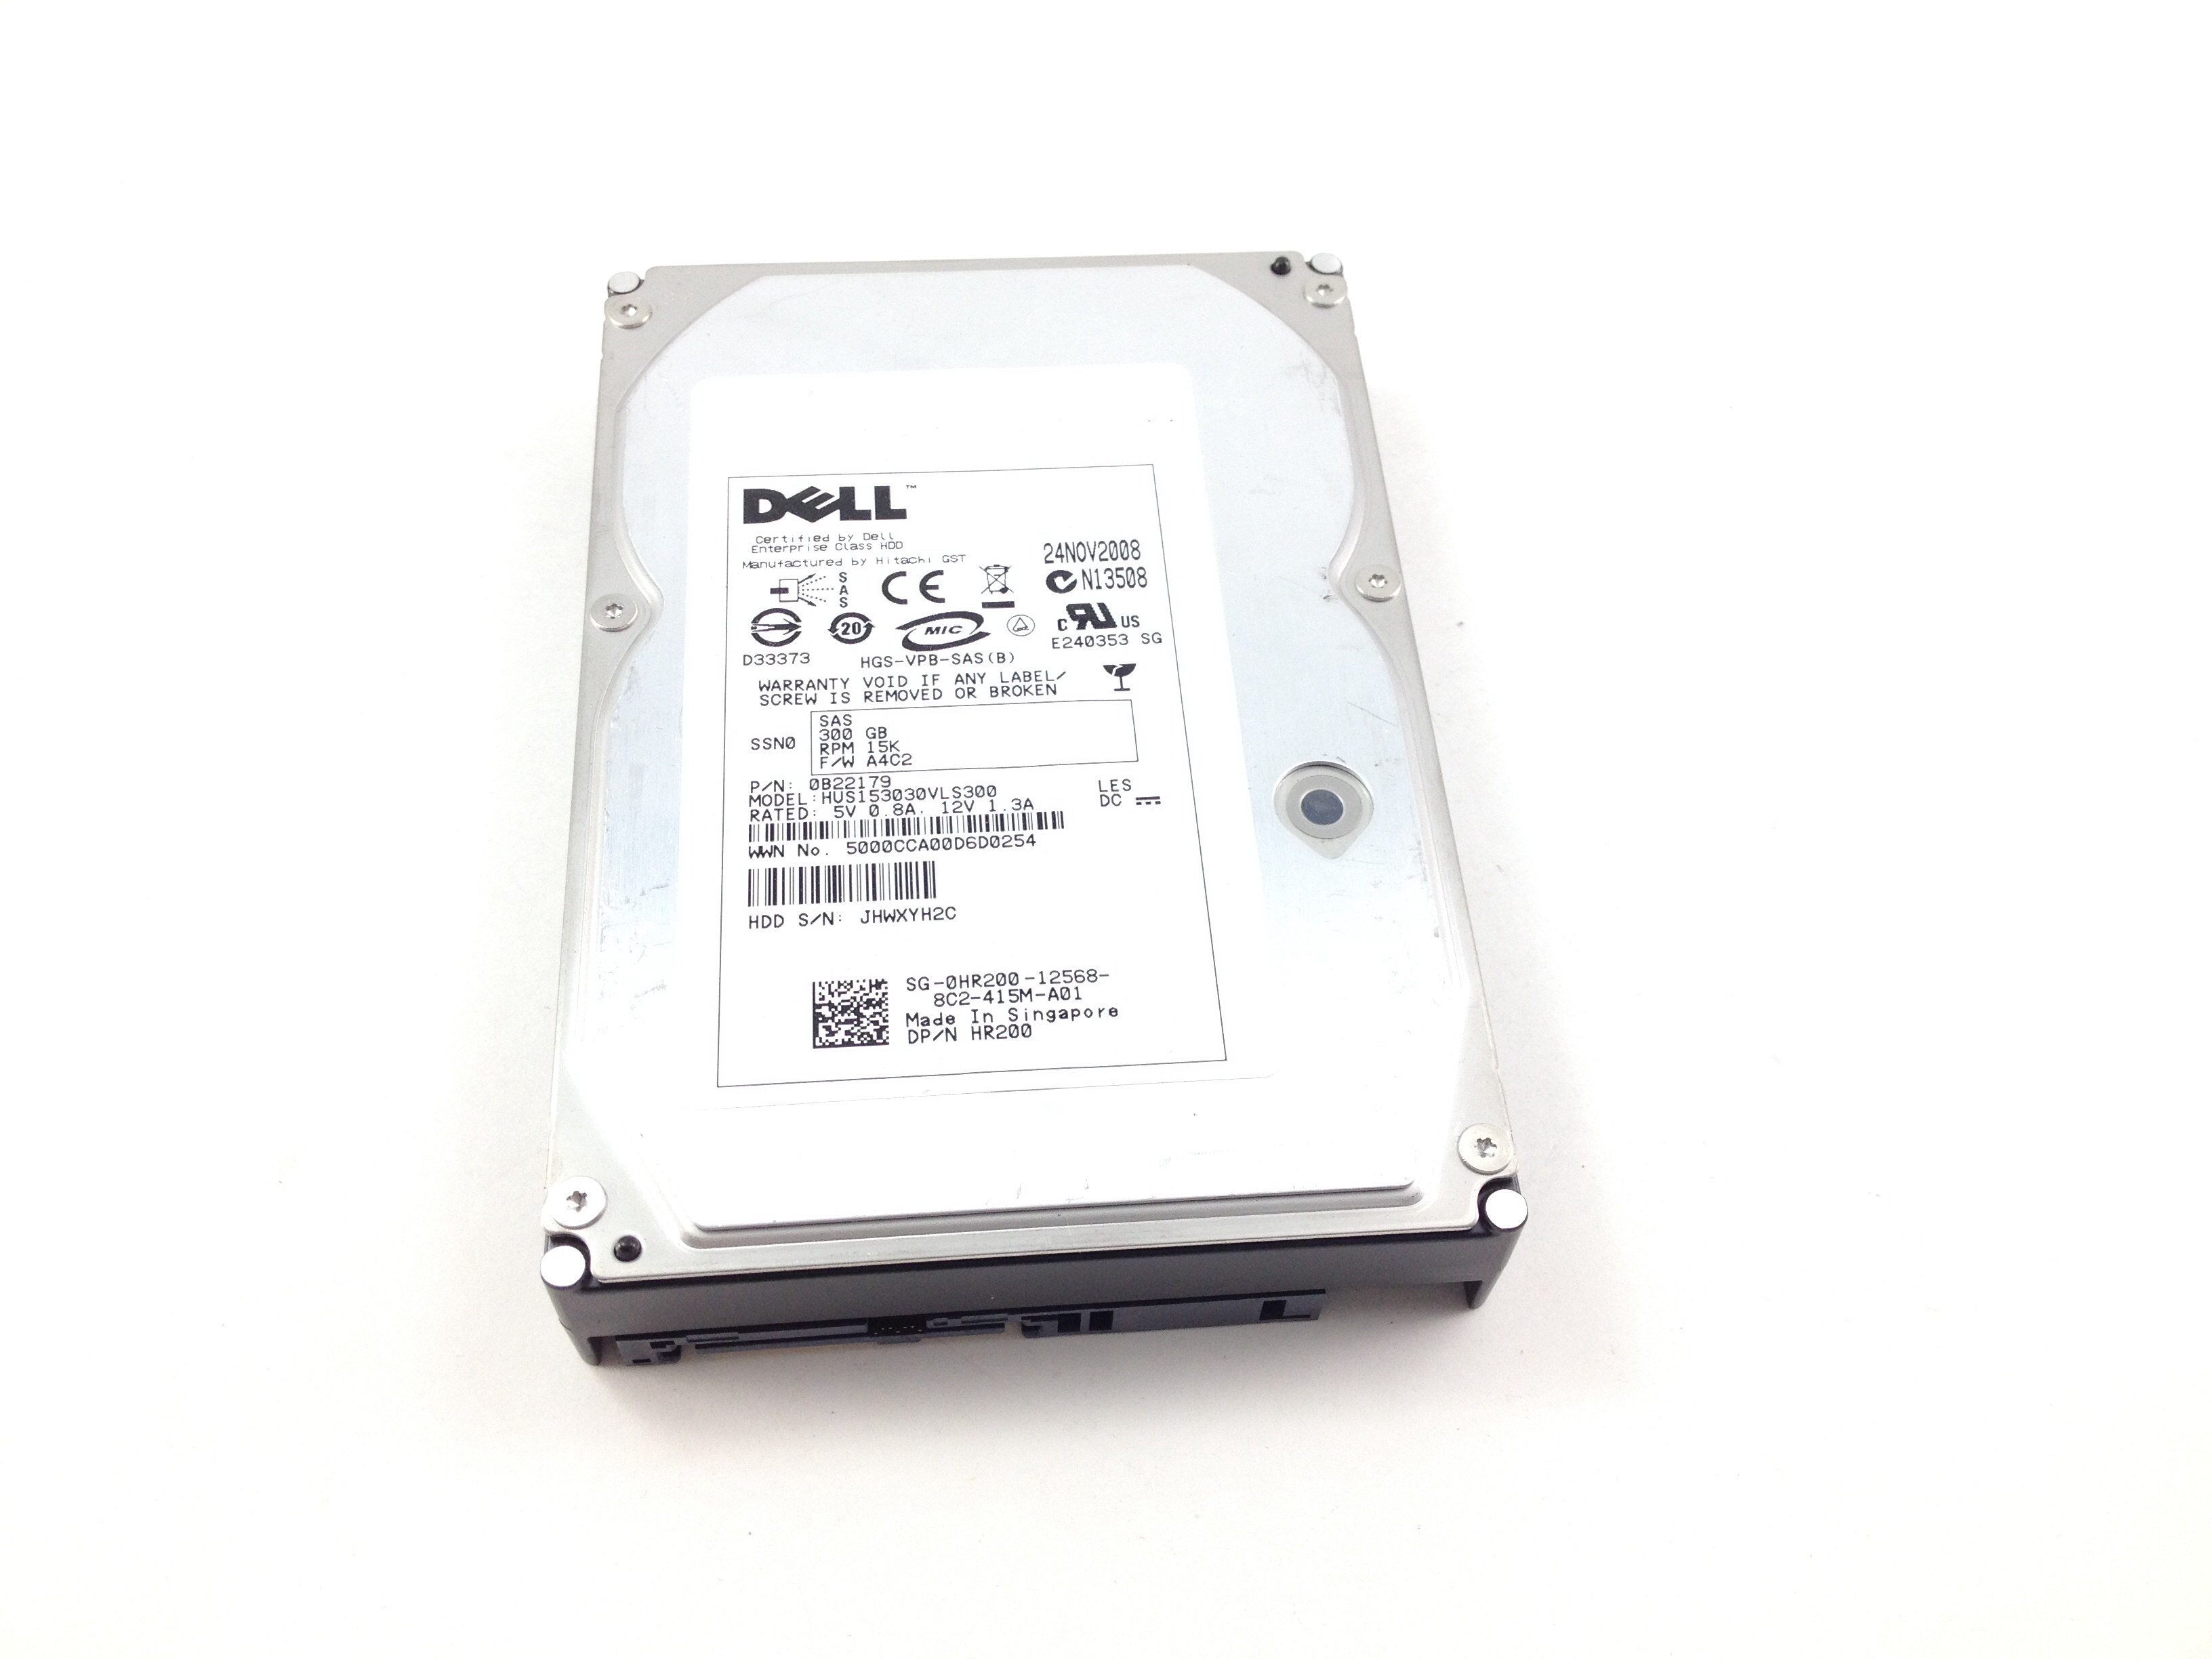 DELL HITACHI 300GB 15K SAS 3GBPS 3.5'' HARD DRIVE (HR200)